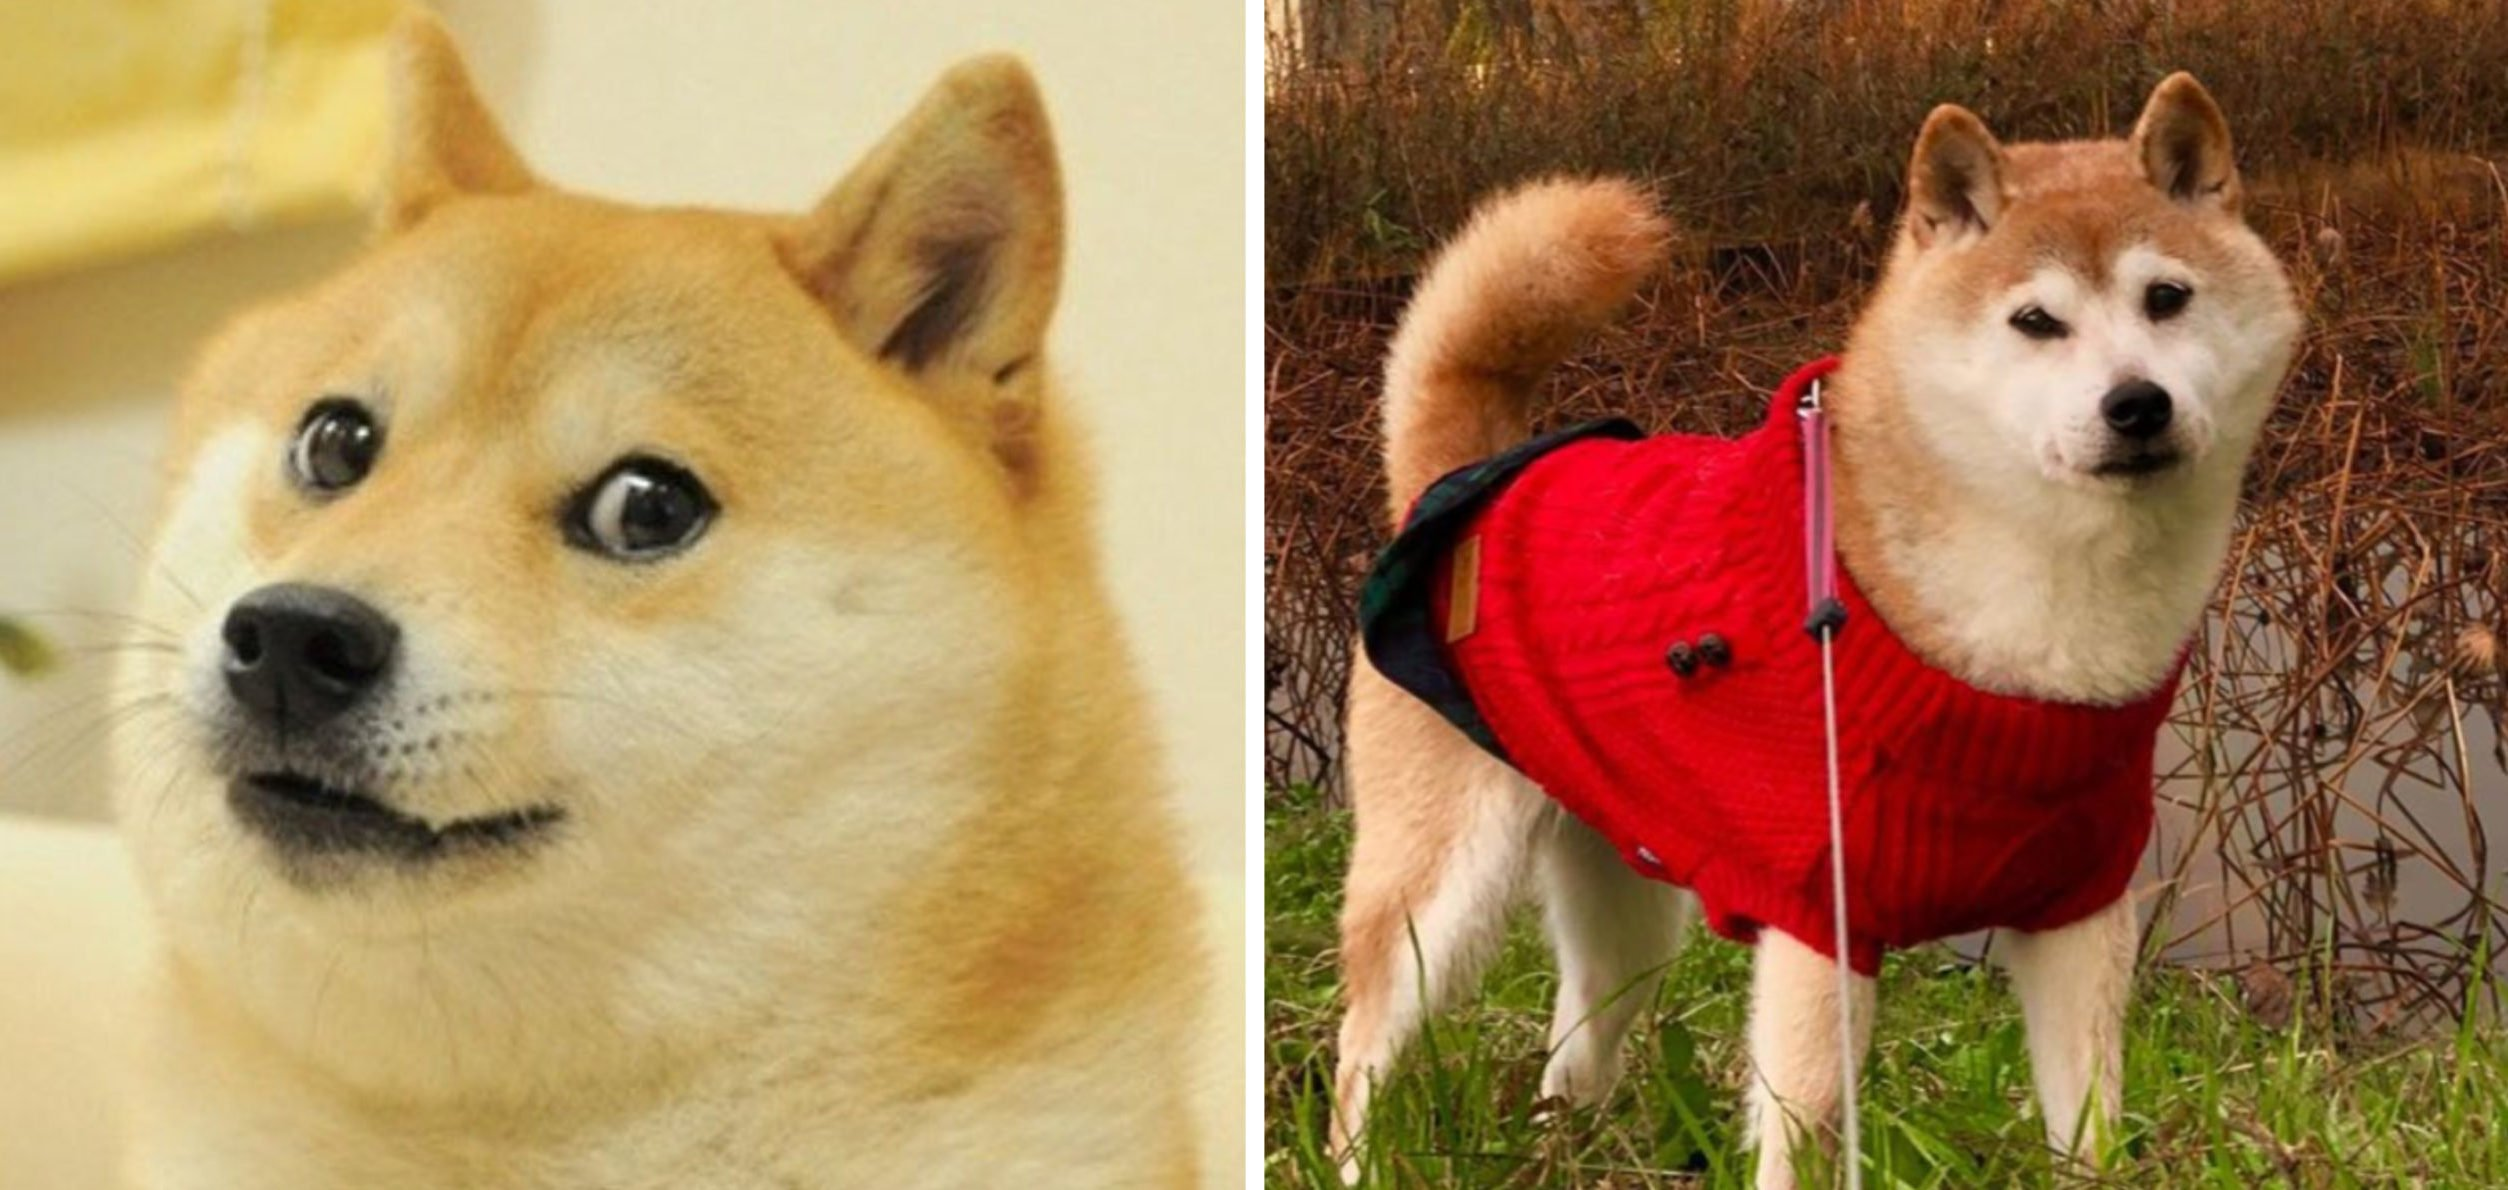 The Unexpectedly Wholesome Backstory Of The Doge Meme